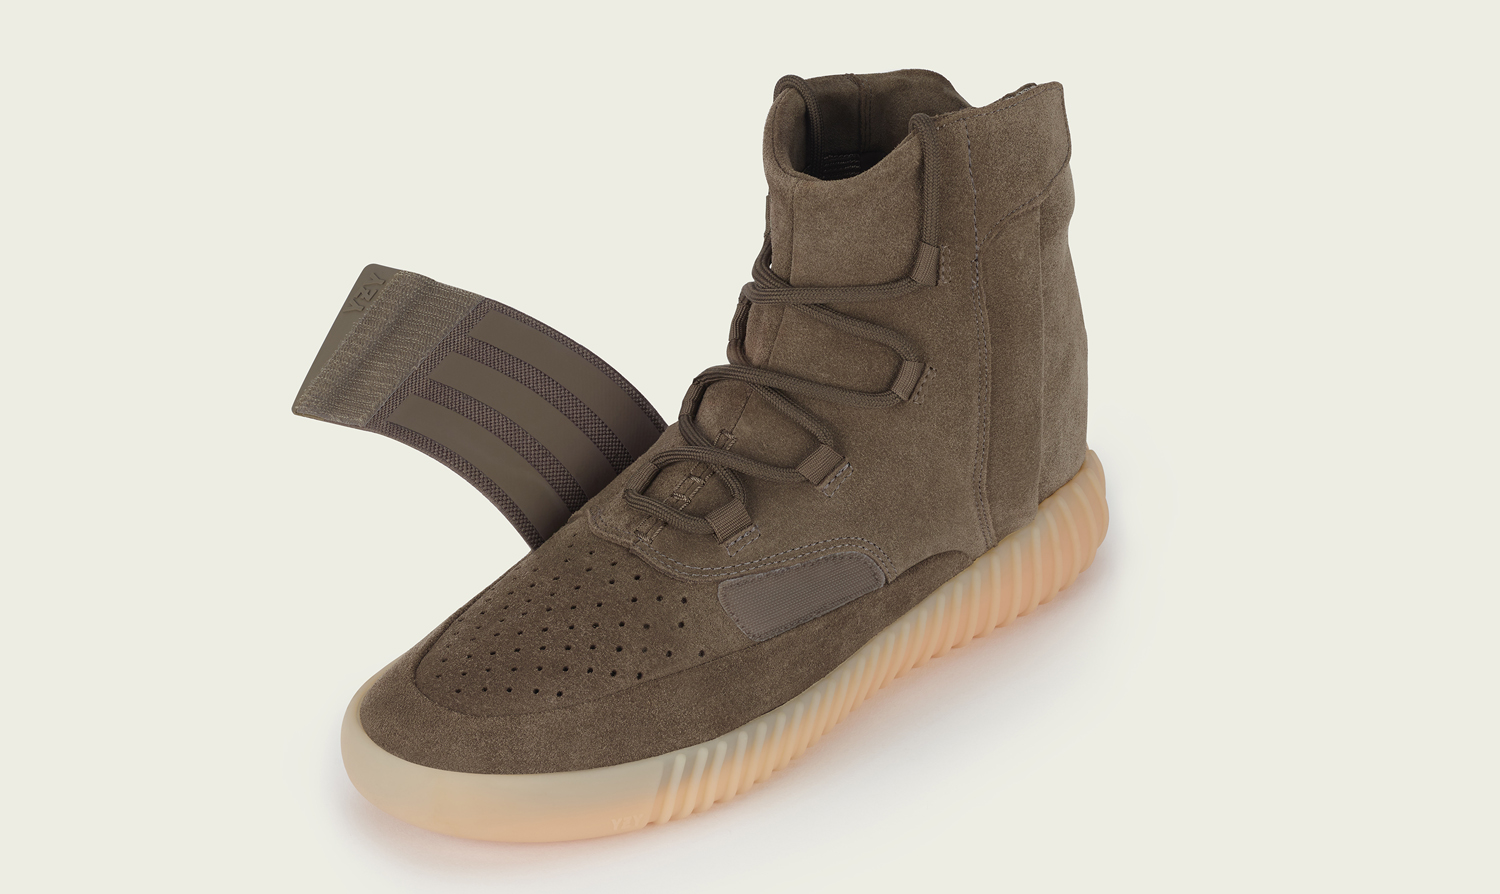 c8239b322c001 Does the Adidas Yeezy 750 Boost Chocolate Glow in the Dark